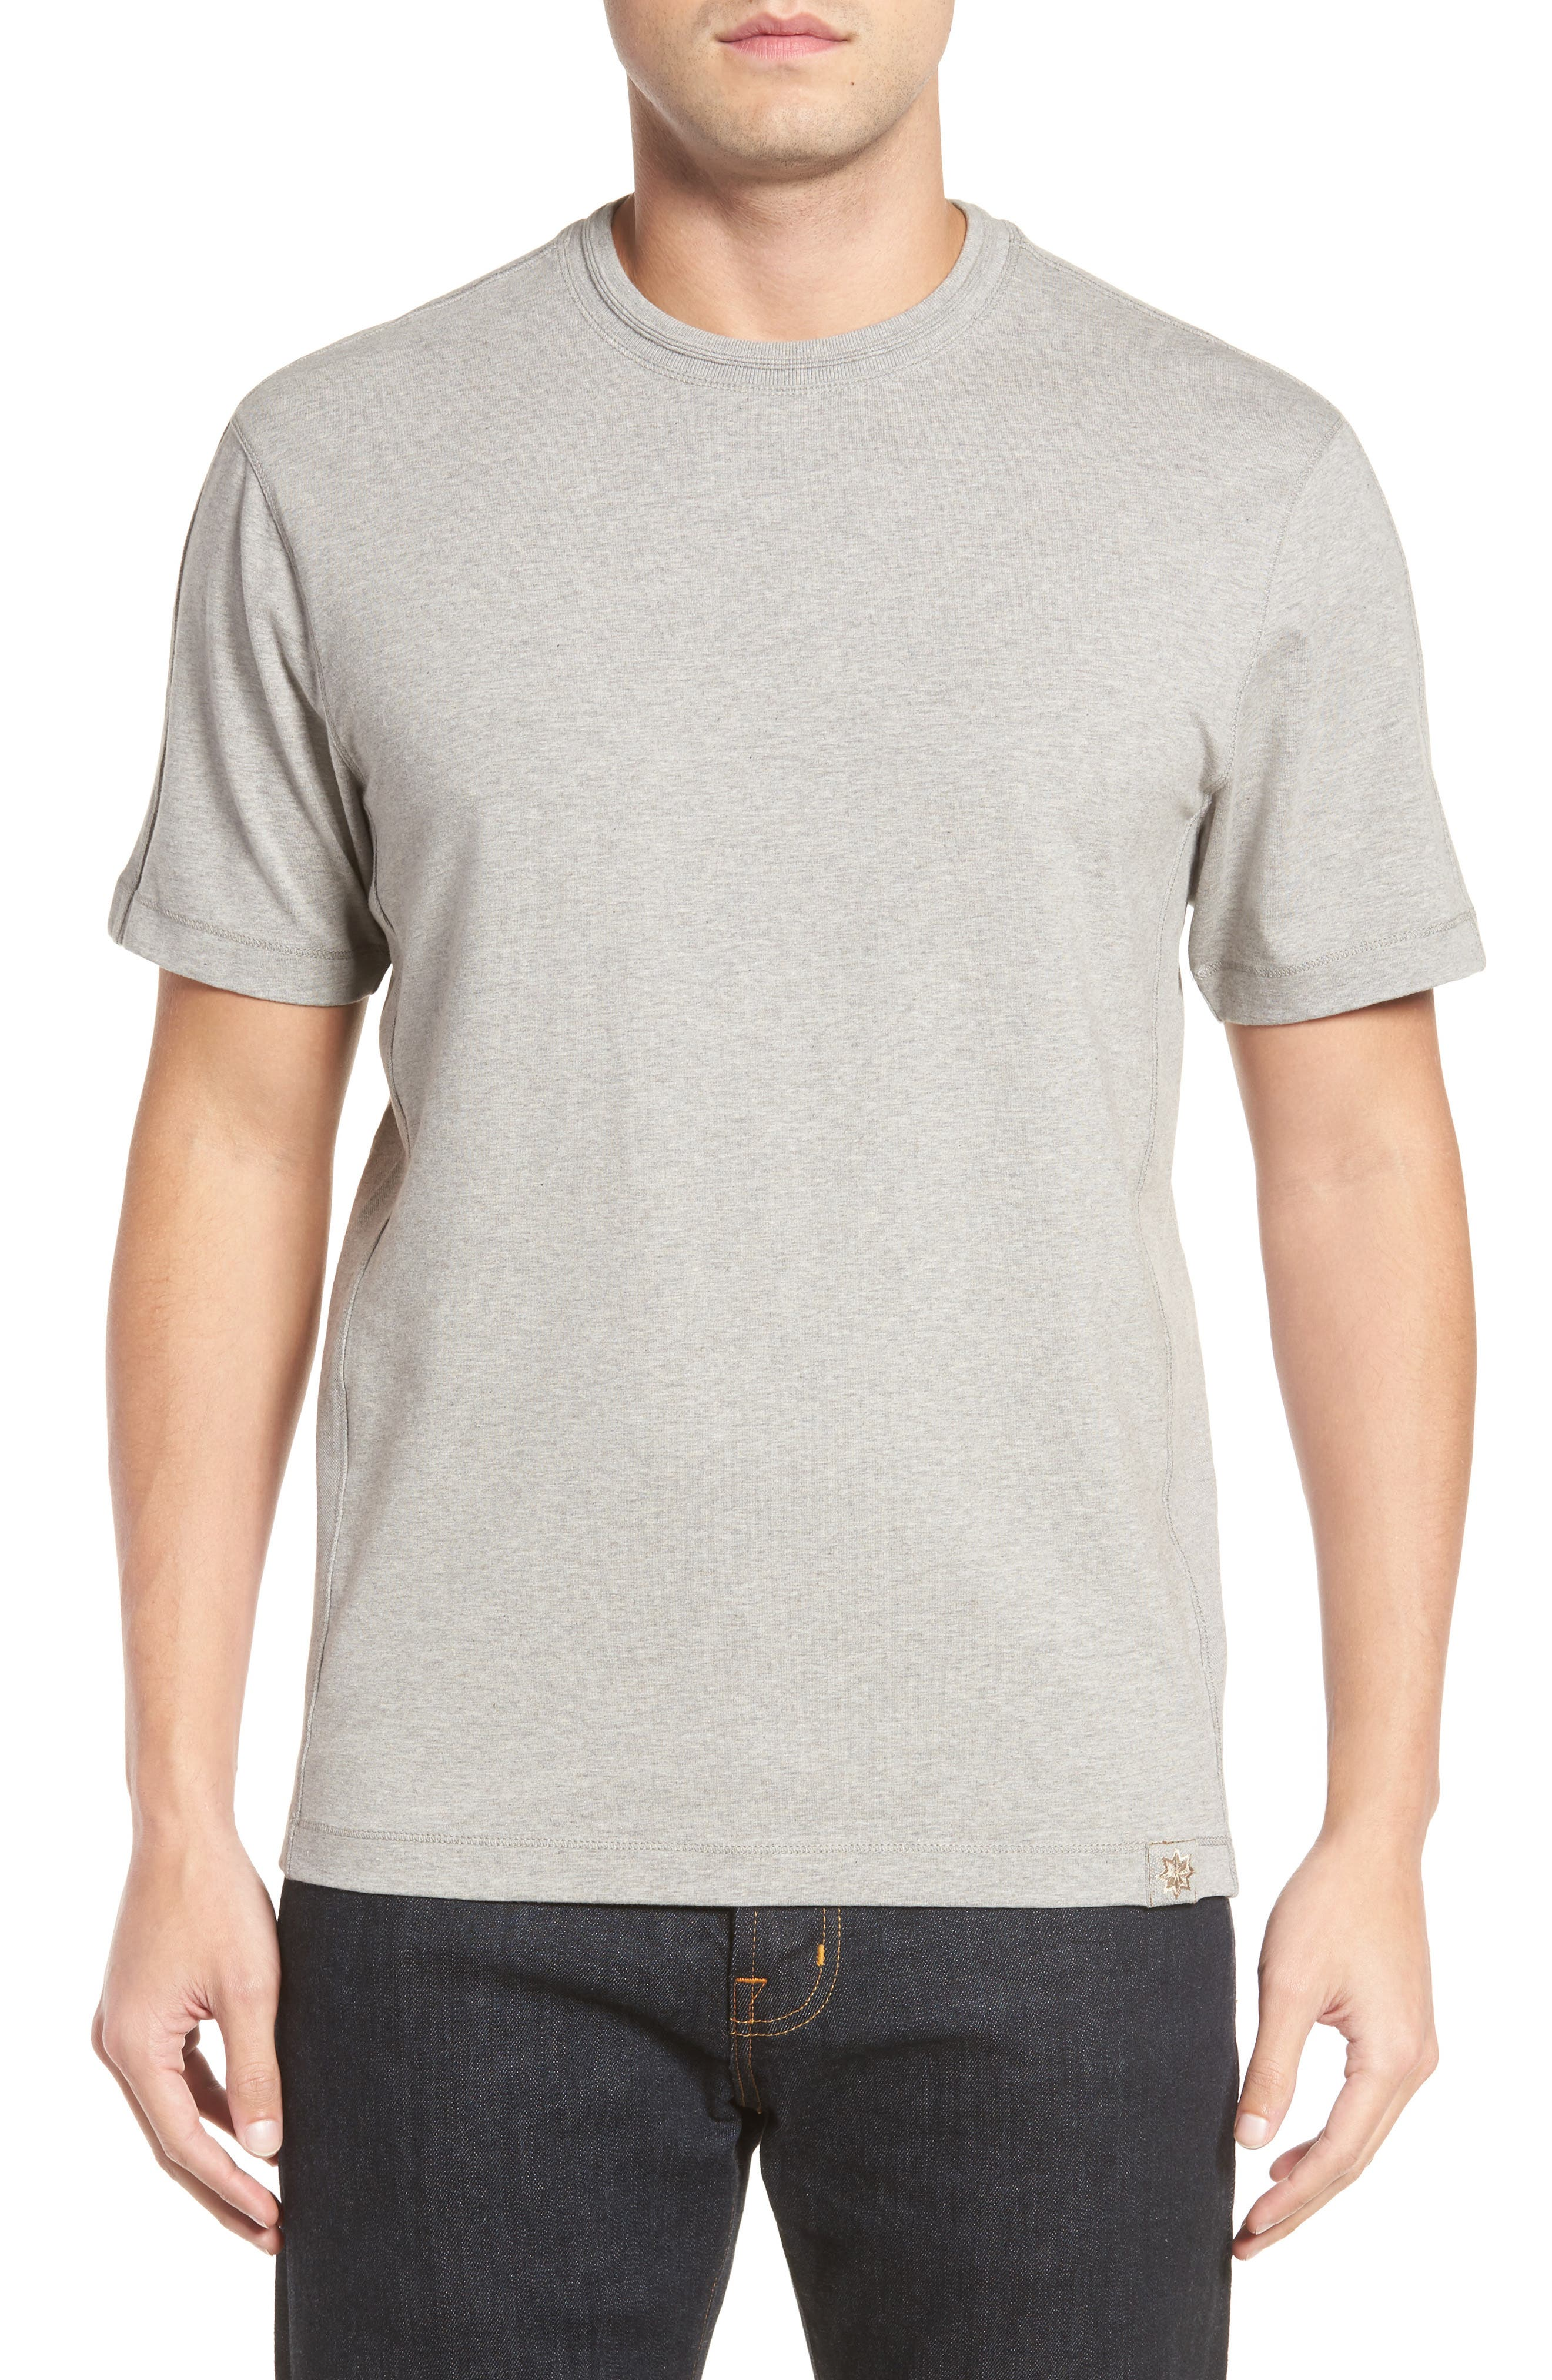 Steve Stretch Jersey T-Shirt,                             Main thumbnail 1, color,